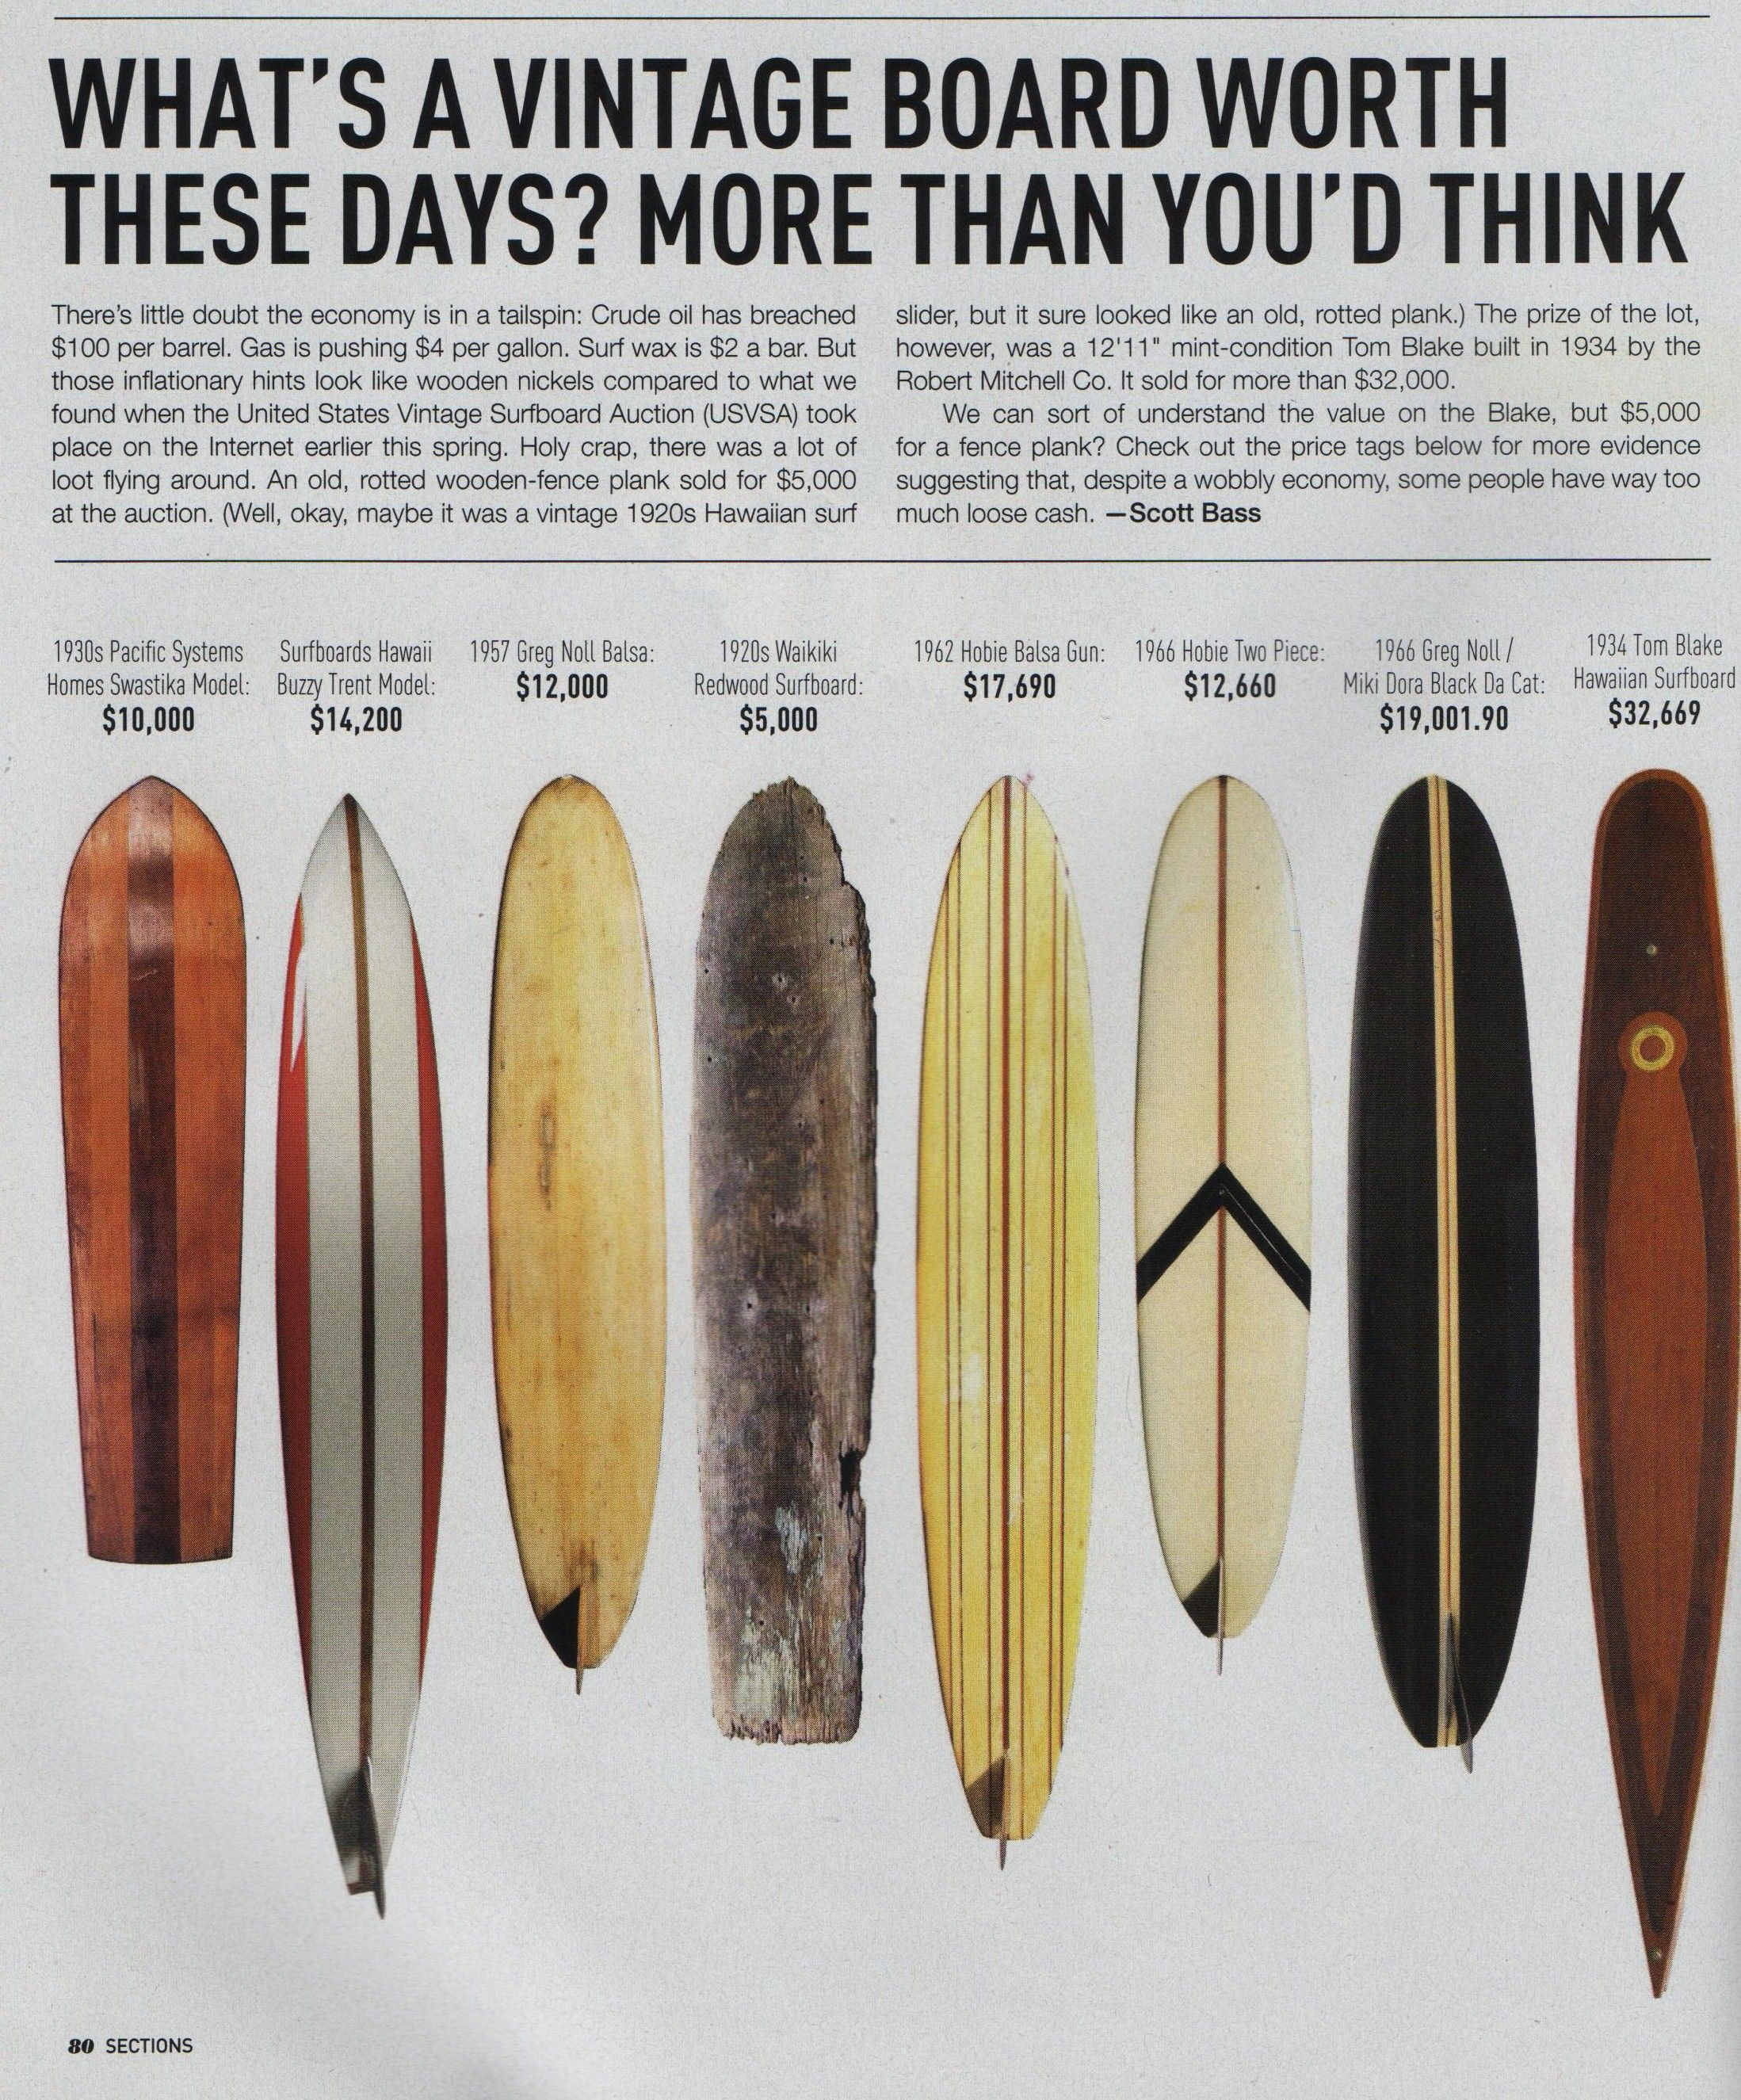 Vintage Surfboard Values Surfing A Collection Of Old Photos Ads